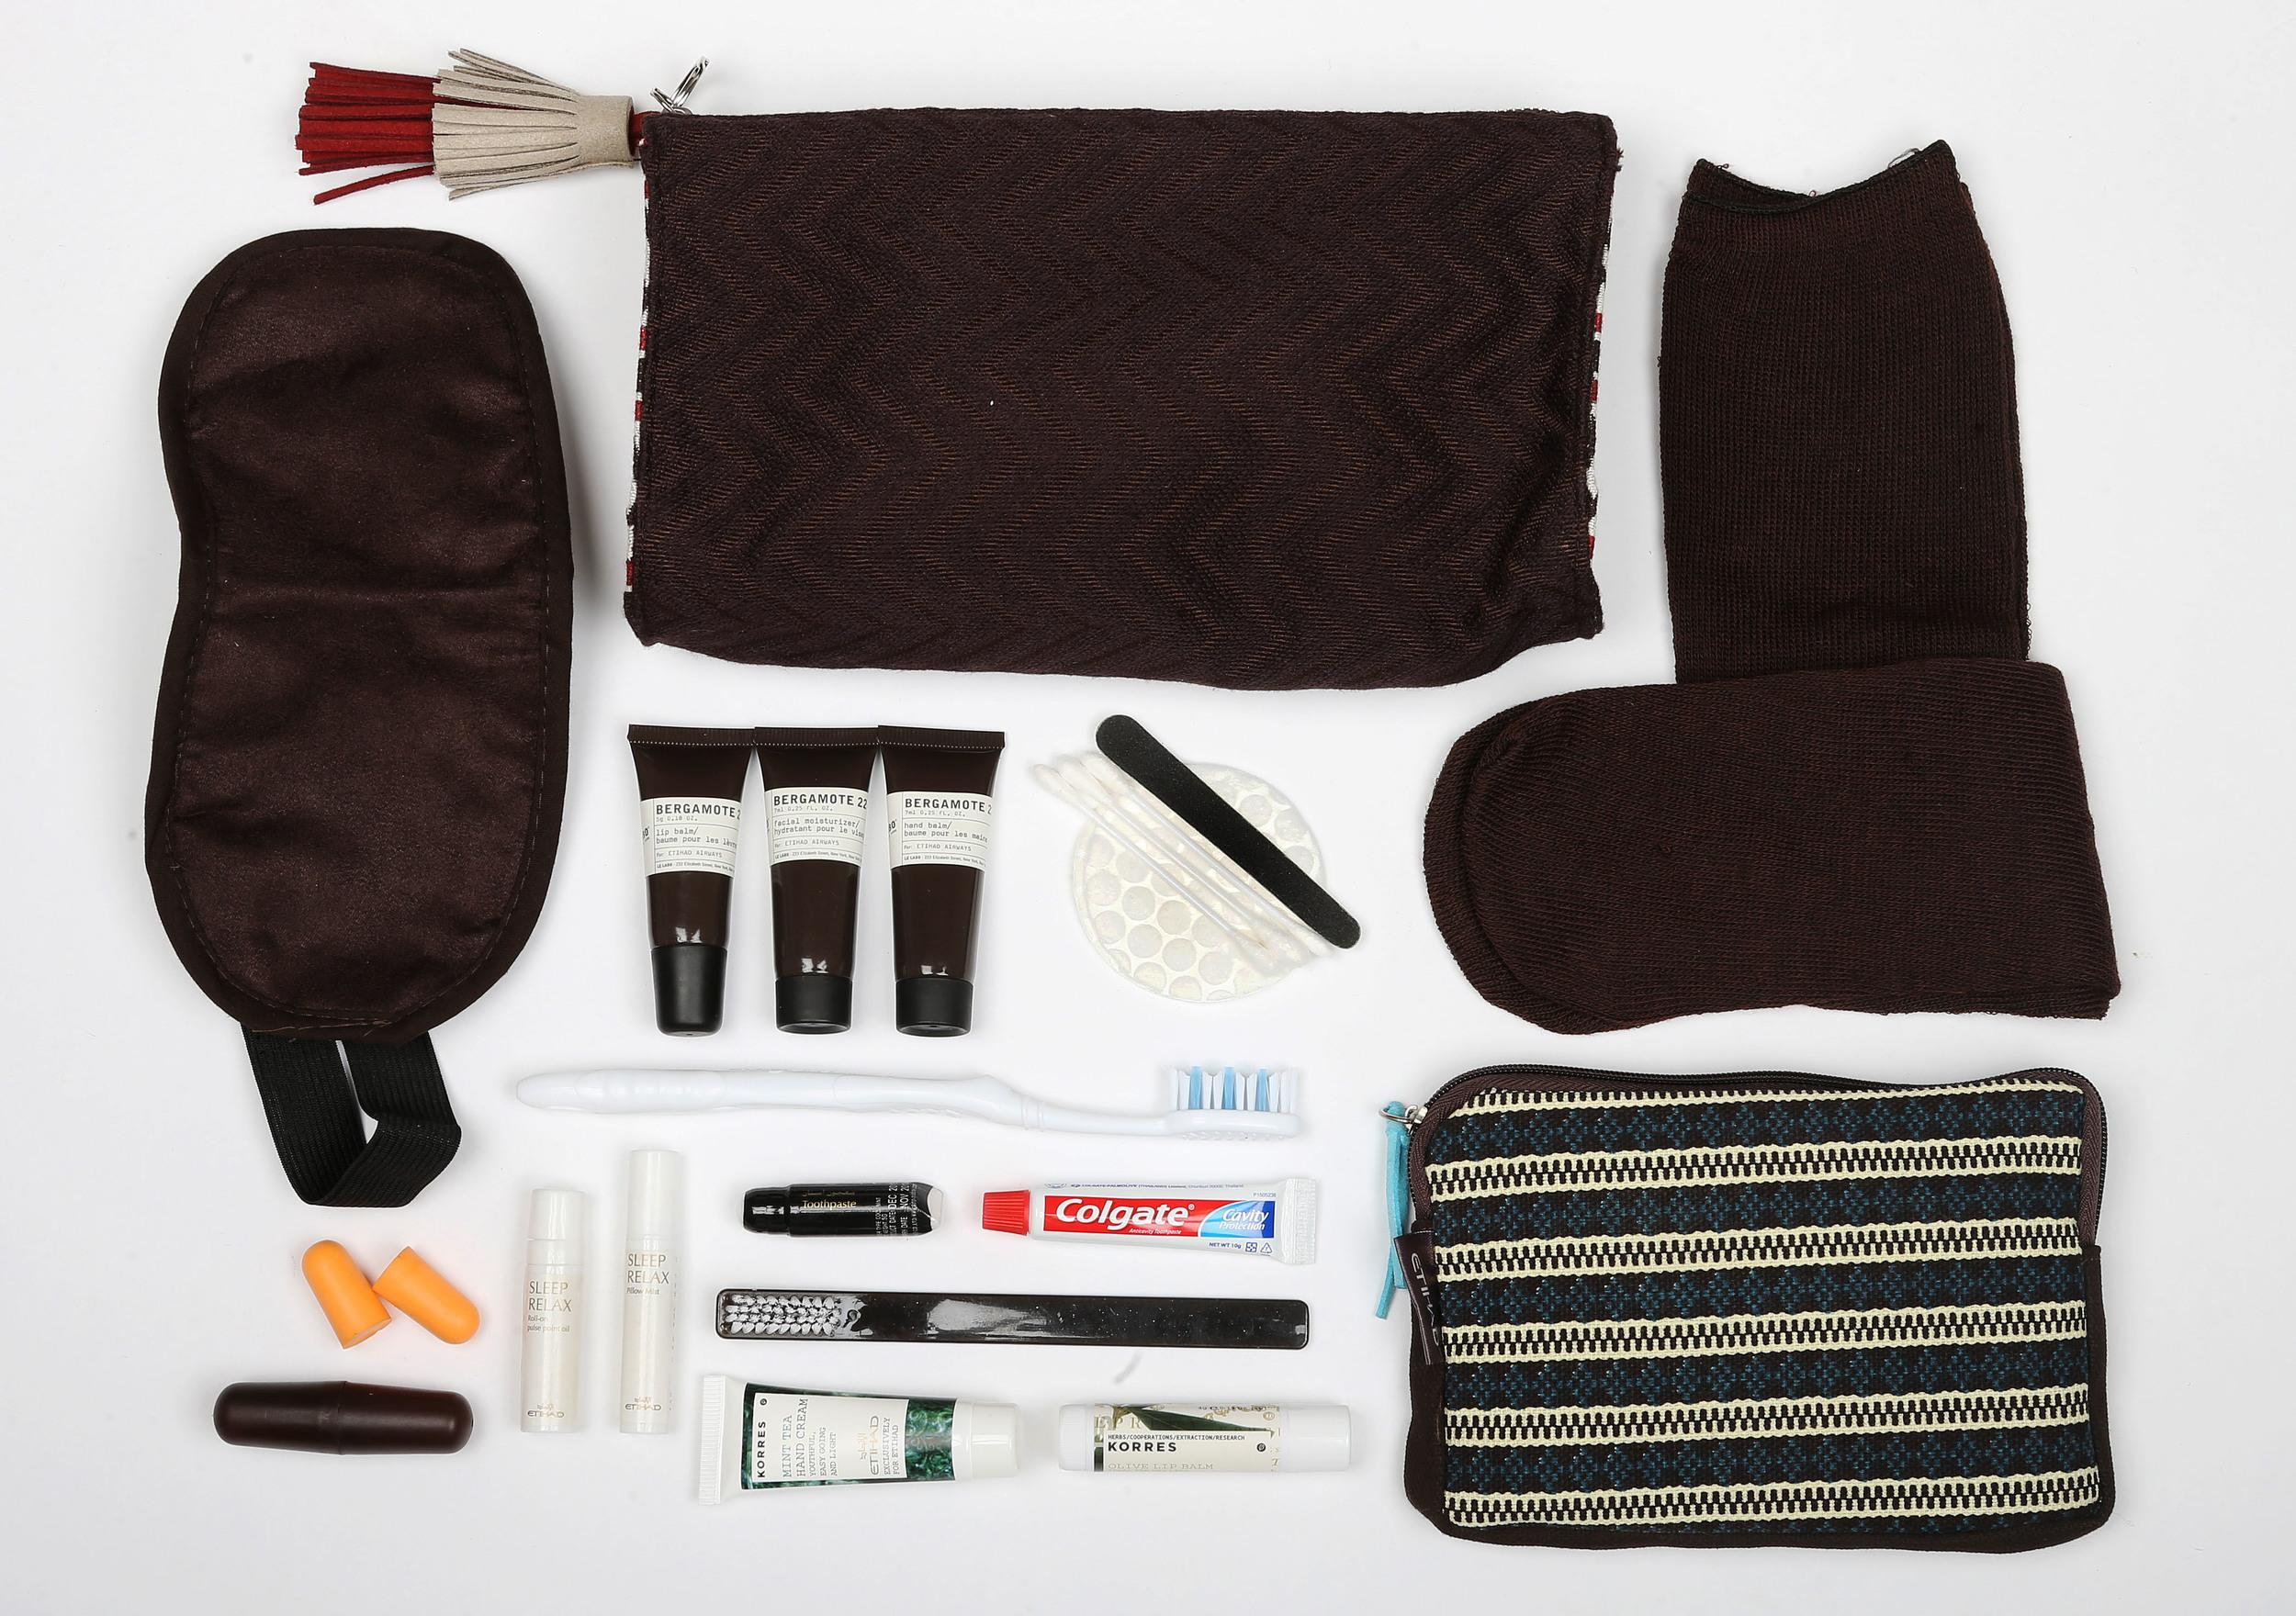 """<p><strong>What do you get?</strong> The Diamond First Class kits: Socks, eye mask, roll-on pulse point oil, pillow mist for a """"good night's sleep"""", toothbrush, toothpaste, cotton buds, make-up pads, emery board, products by Le Labo, the luxury New York brand (lip balm, hand balm and facial moisturiser), shaving kit of Schick razor and tube of shaving cream<br /> The Pearl Business Class kits: Socks, eye mask, ear plugs, toothbrush, toothpaste, cotton buds, pads, emery board, skincare products by Korres, the Athens-based brand (mint tea hand cream and olive lip balm)<br /> Coral Economy class: Socks, eye mask, ear plugs<br /> <strong>Best bit of the kit?</strong> The bags, they're beautiful, elegant and earthy. They're helping local Emiratis, and they have a whiff of lavender about them, which means you could use them as a pillow.</p>"""